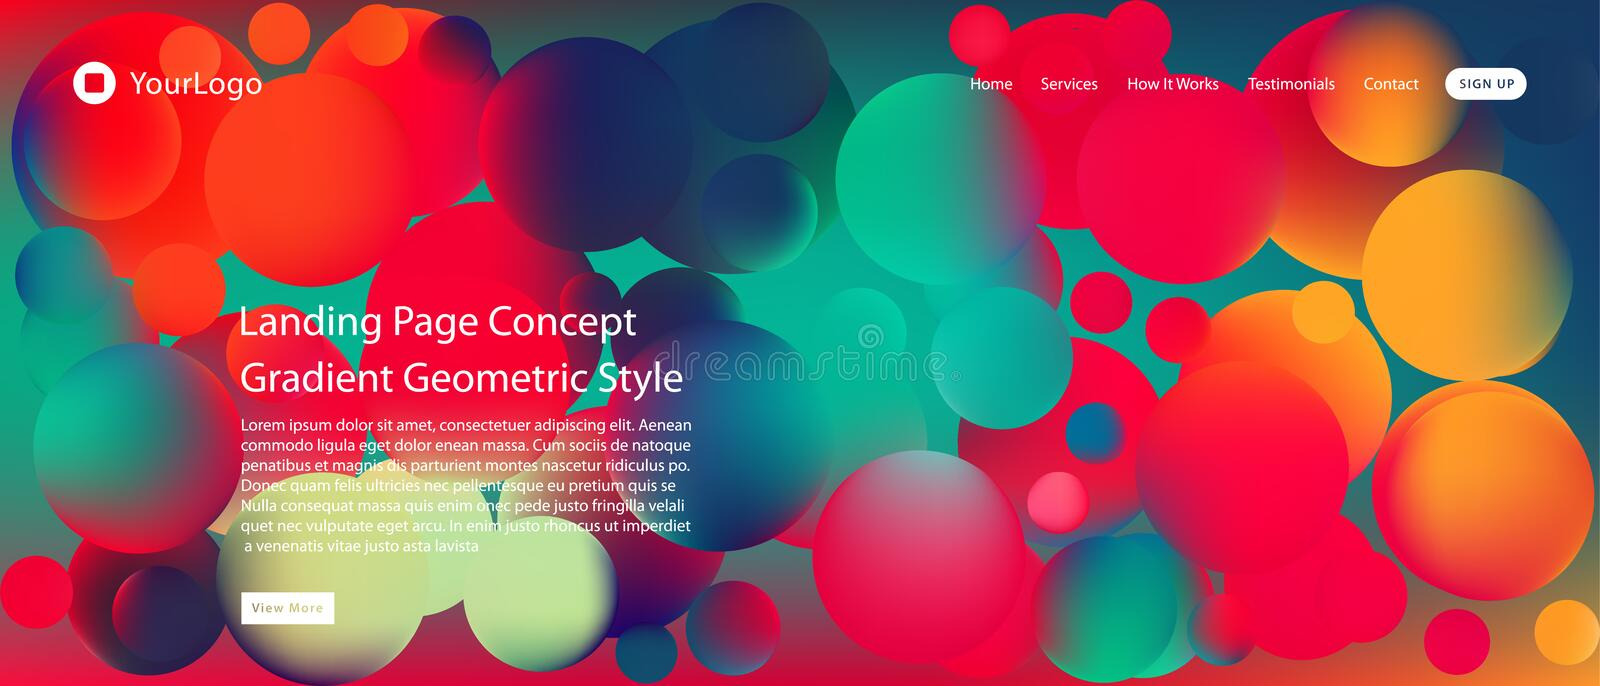 Website or mobile app landing page with illustration of Abstract Colorful Minimal Geometric Pattern Background Design and Gradient. Shapes vector illustration